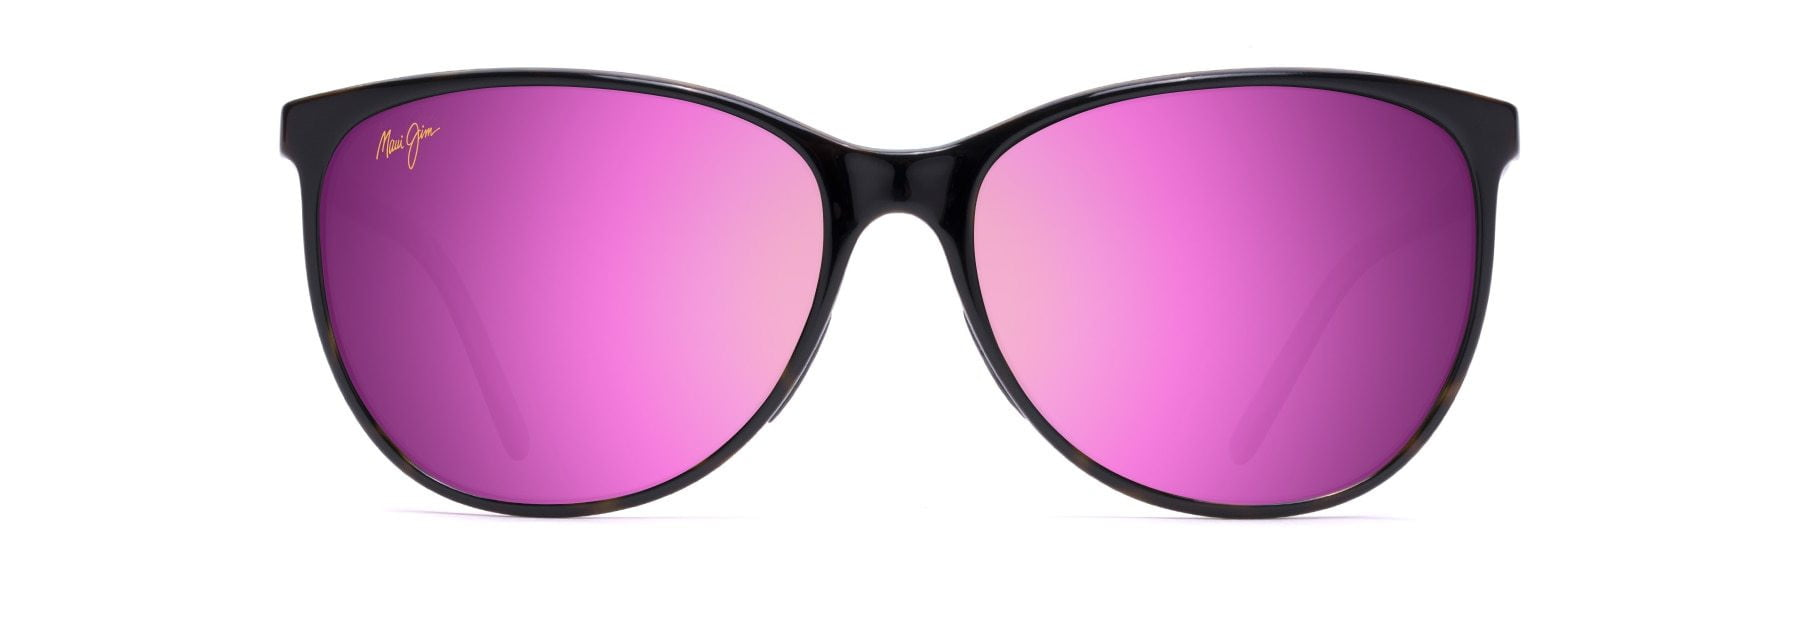 MyMaui Ocean MM723-022 Sunglasses